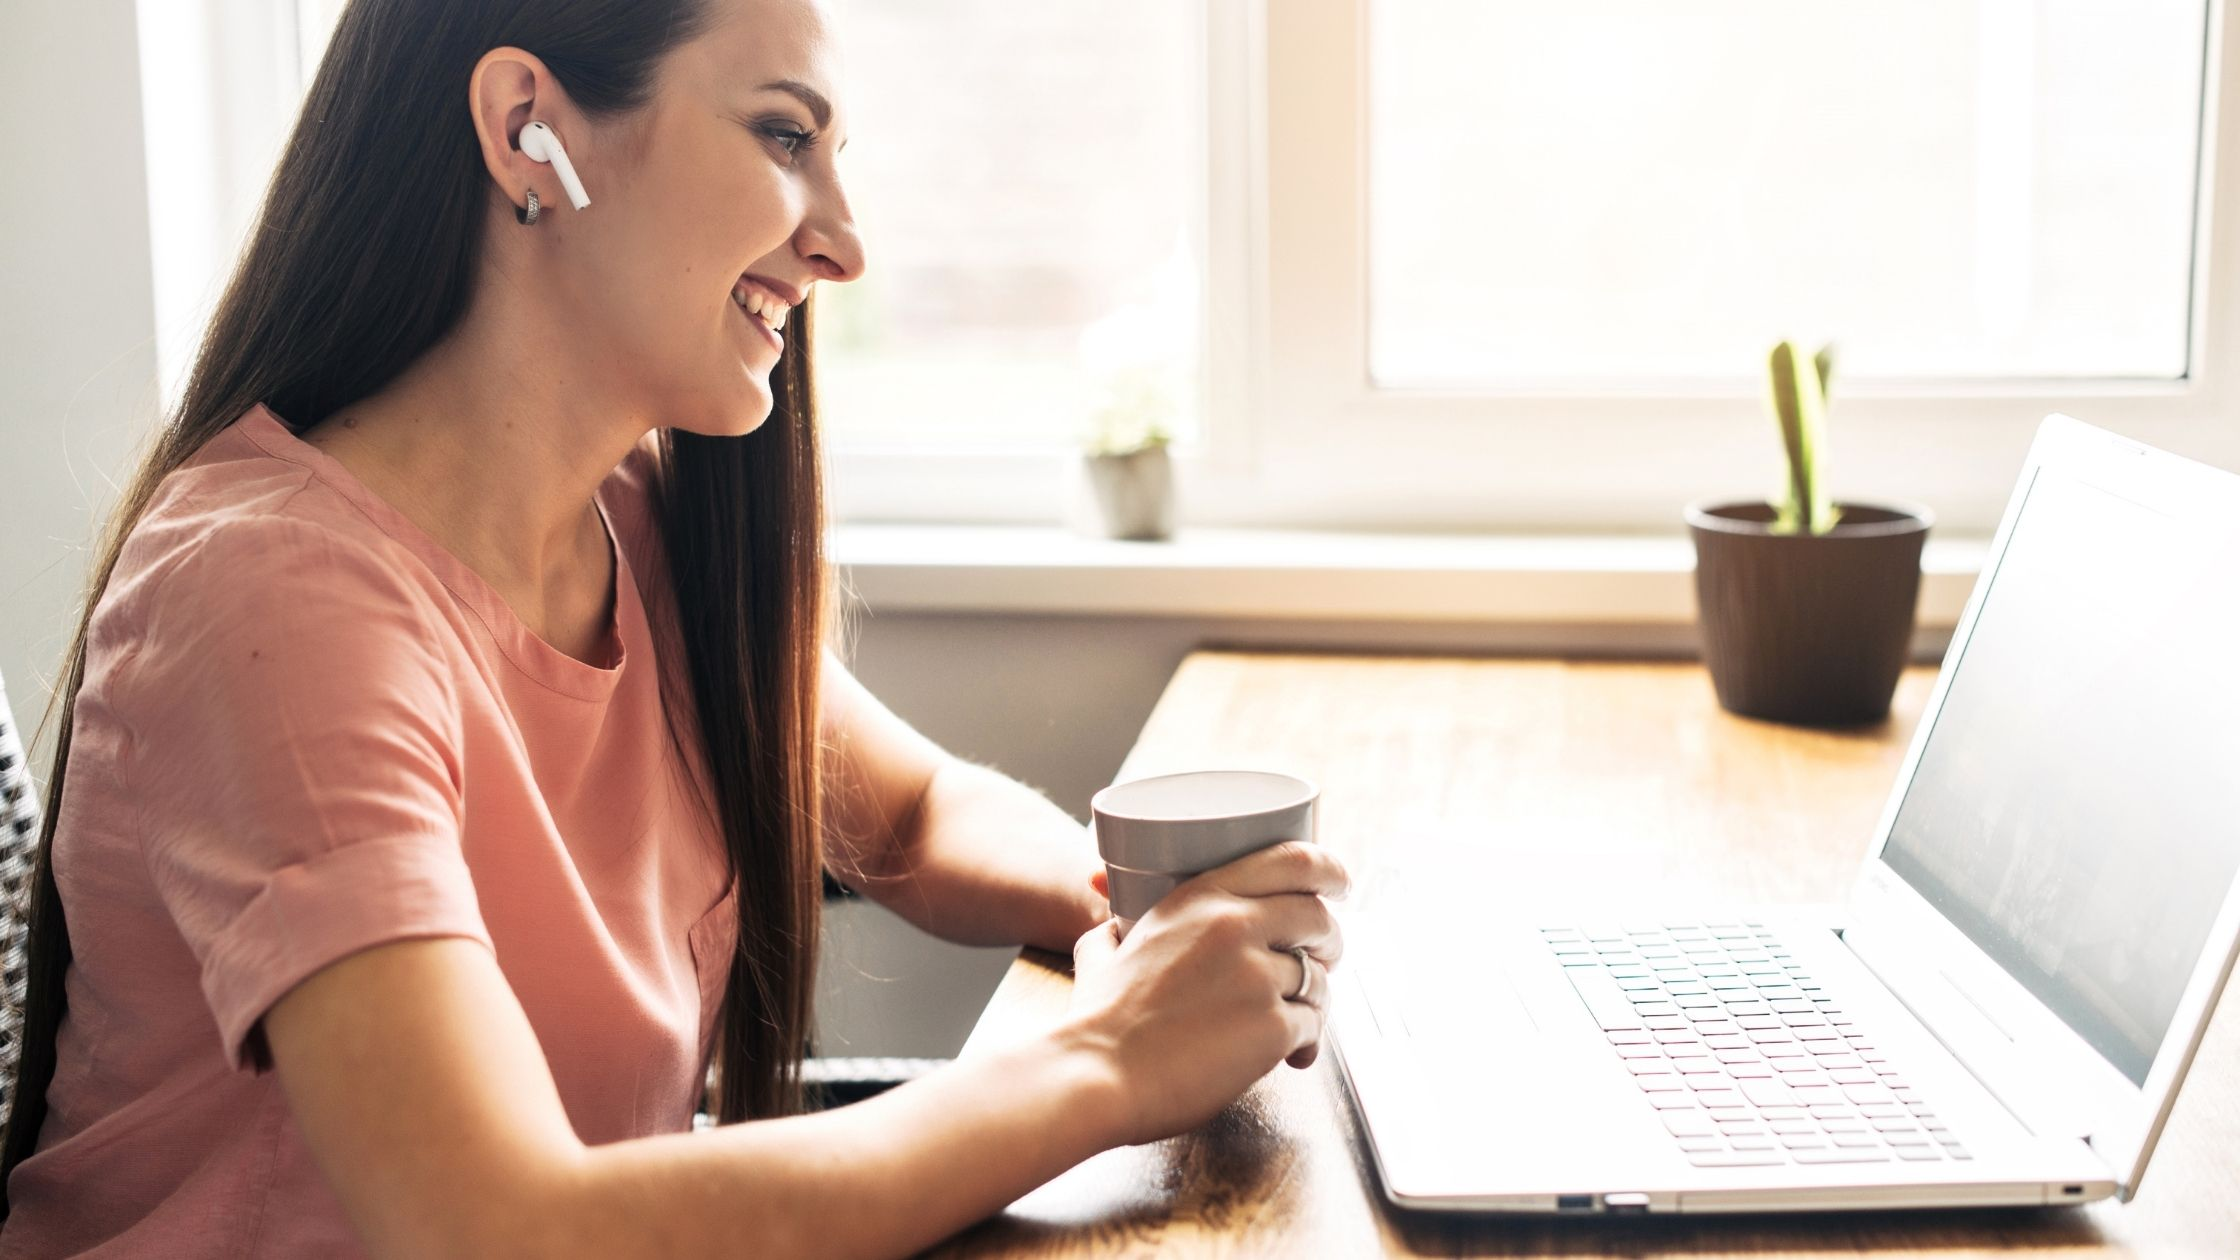 Woman with brown hair wearing ear buds and holding a coffee cup. She is on a zoom call on her laptop.